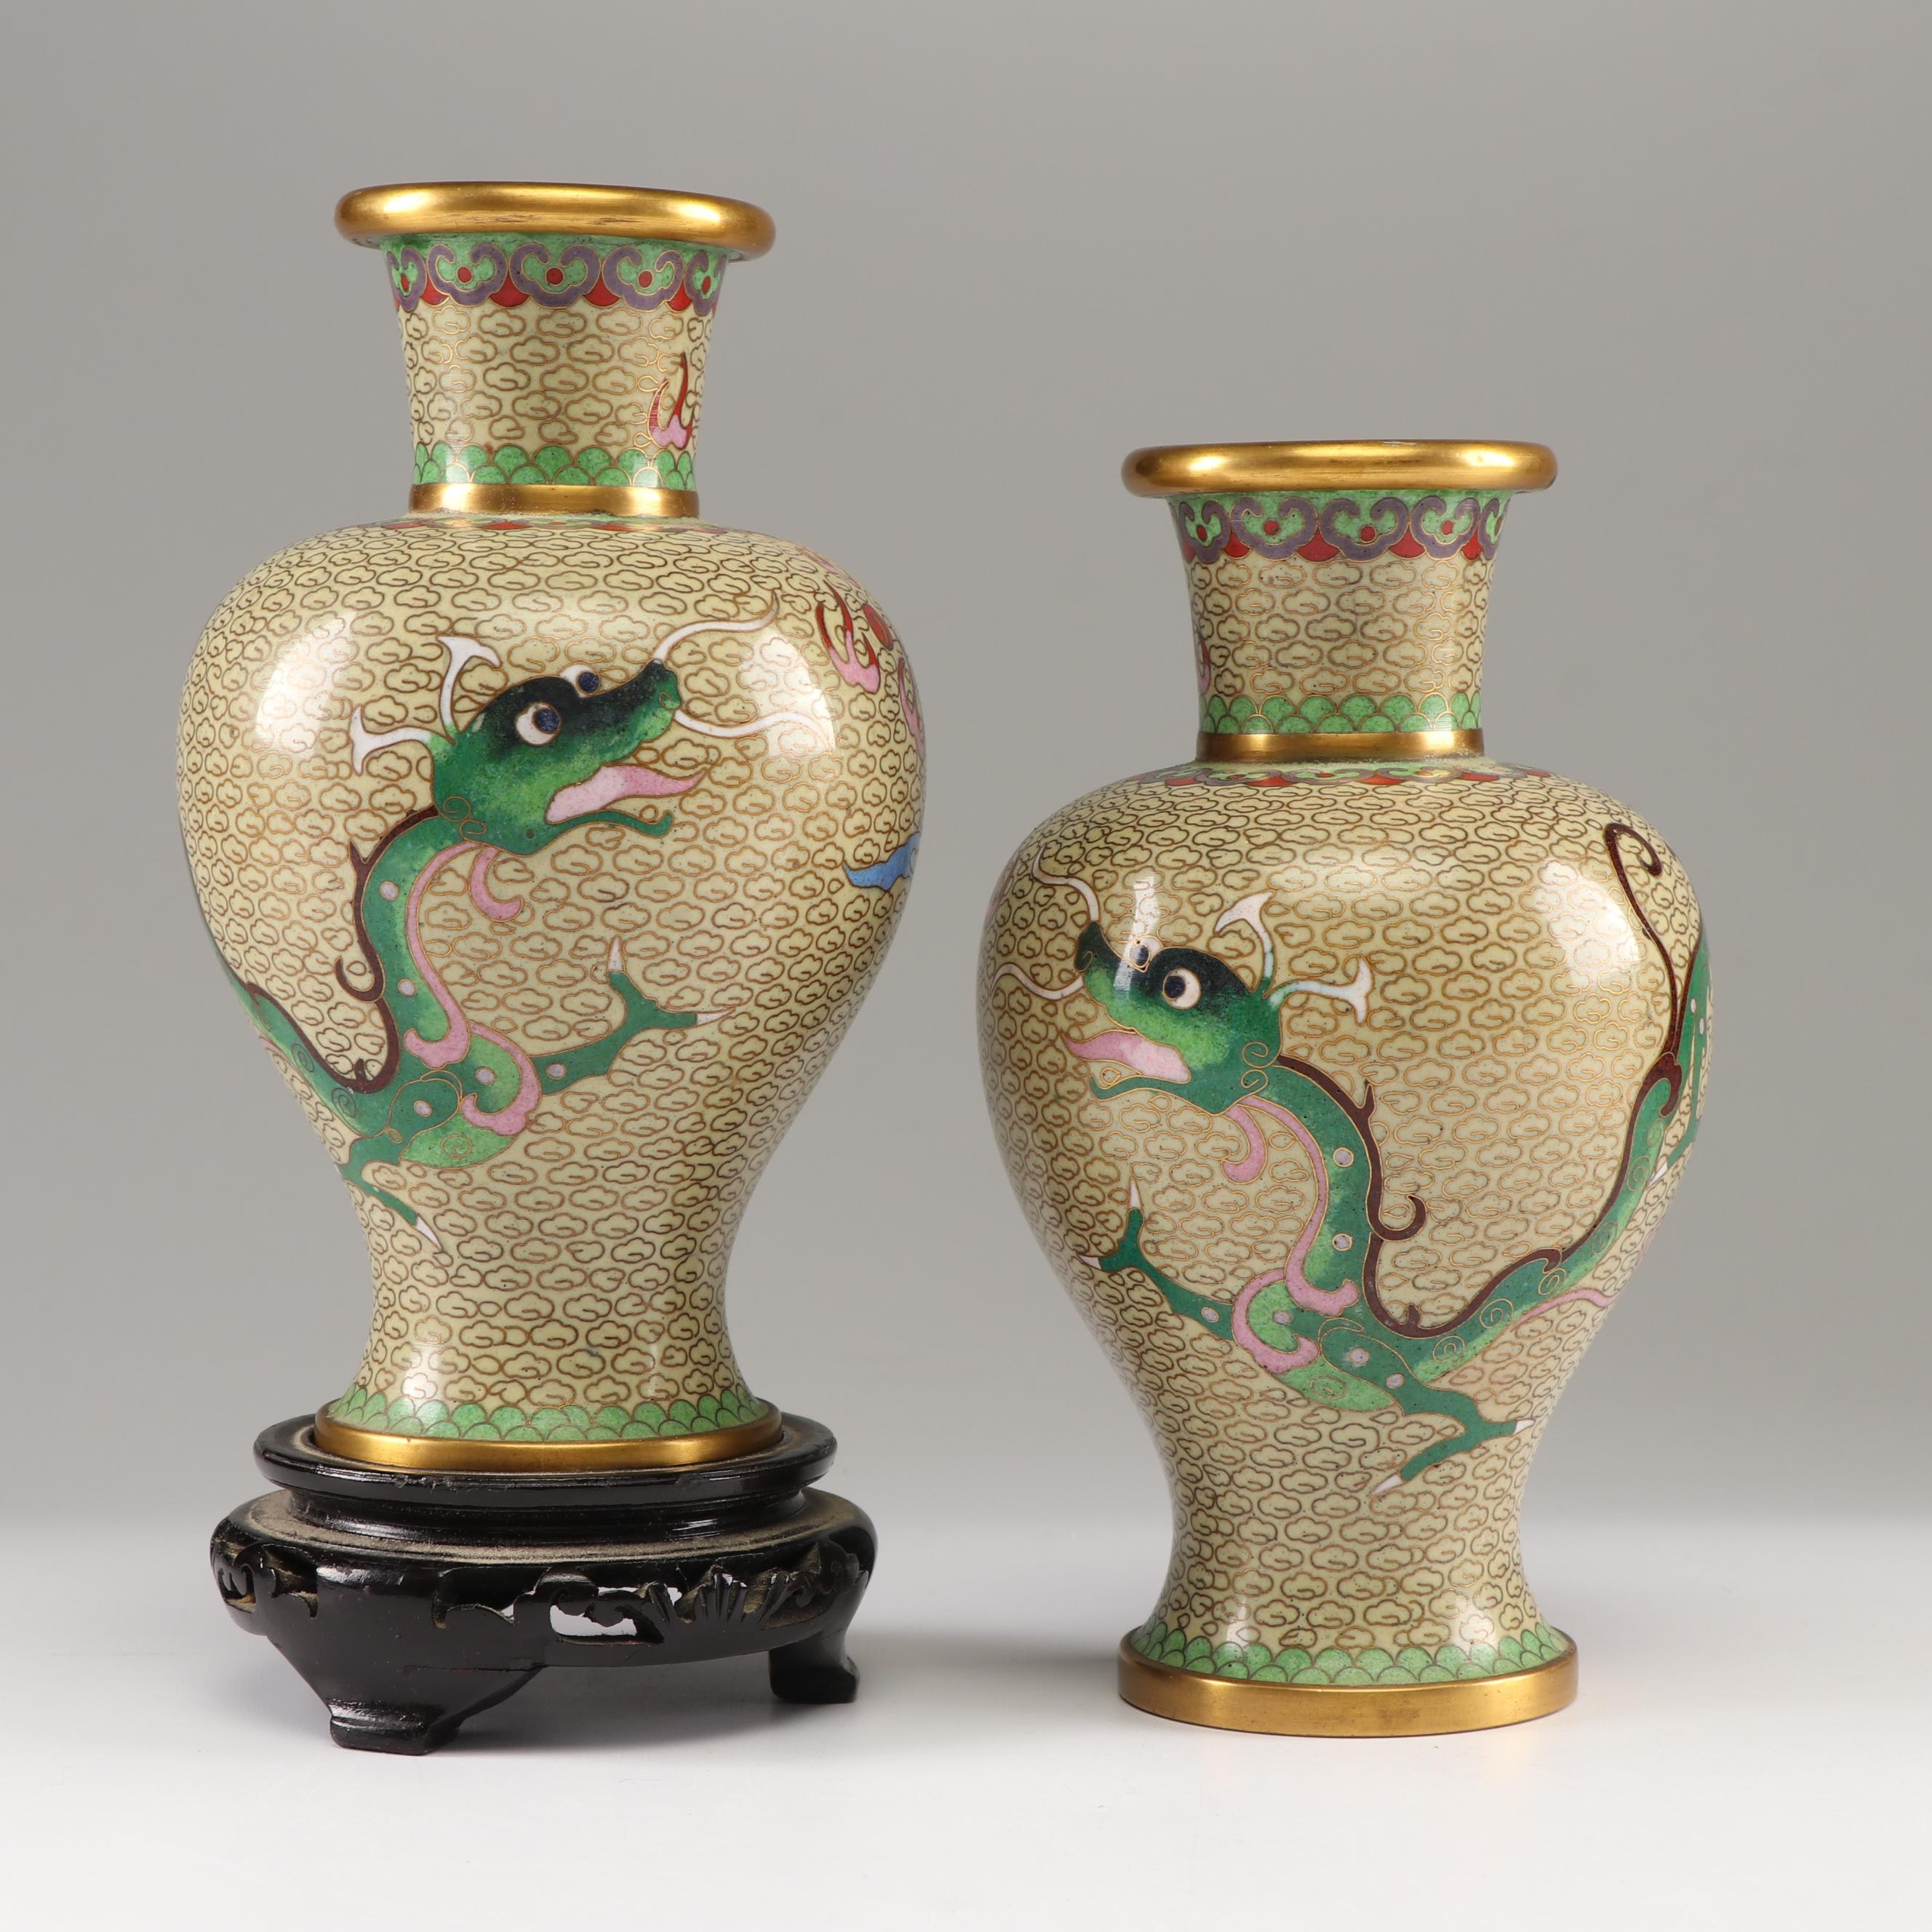 Chinese Cloisonné Vases Depicting a Dragon